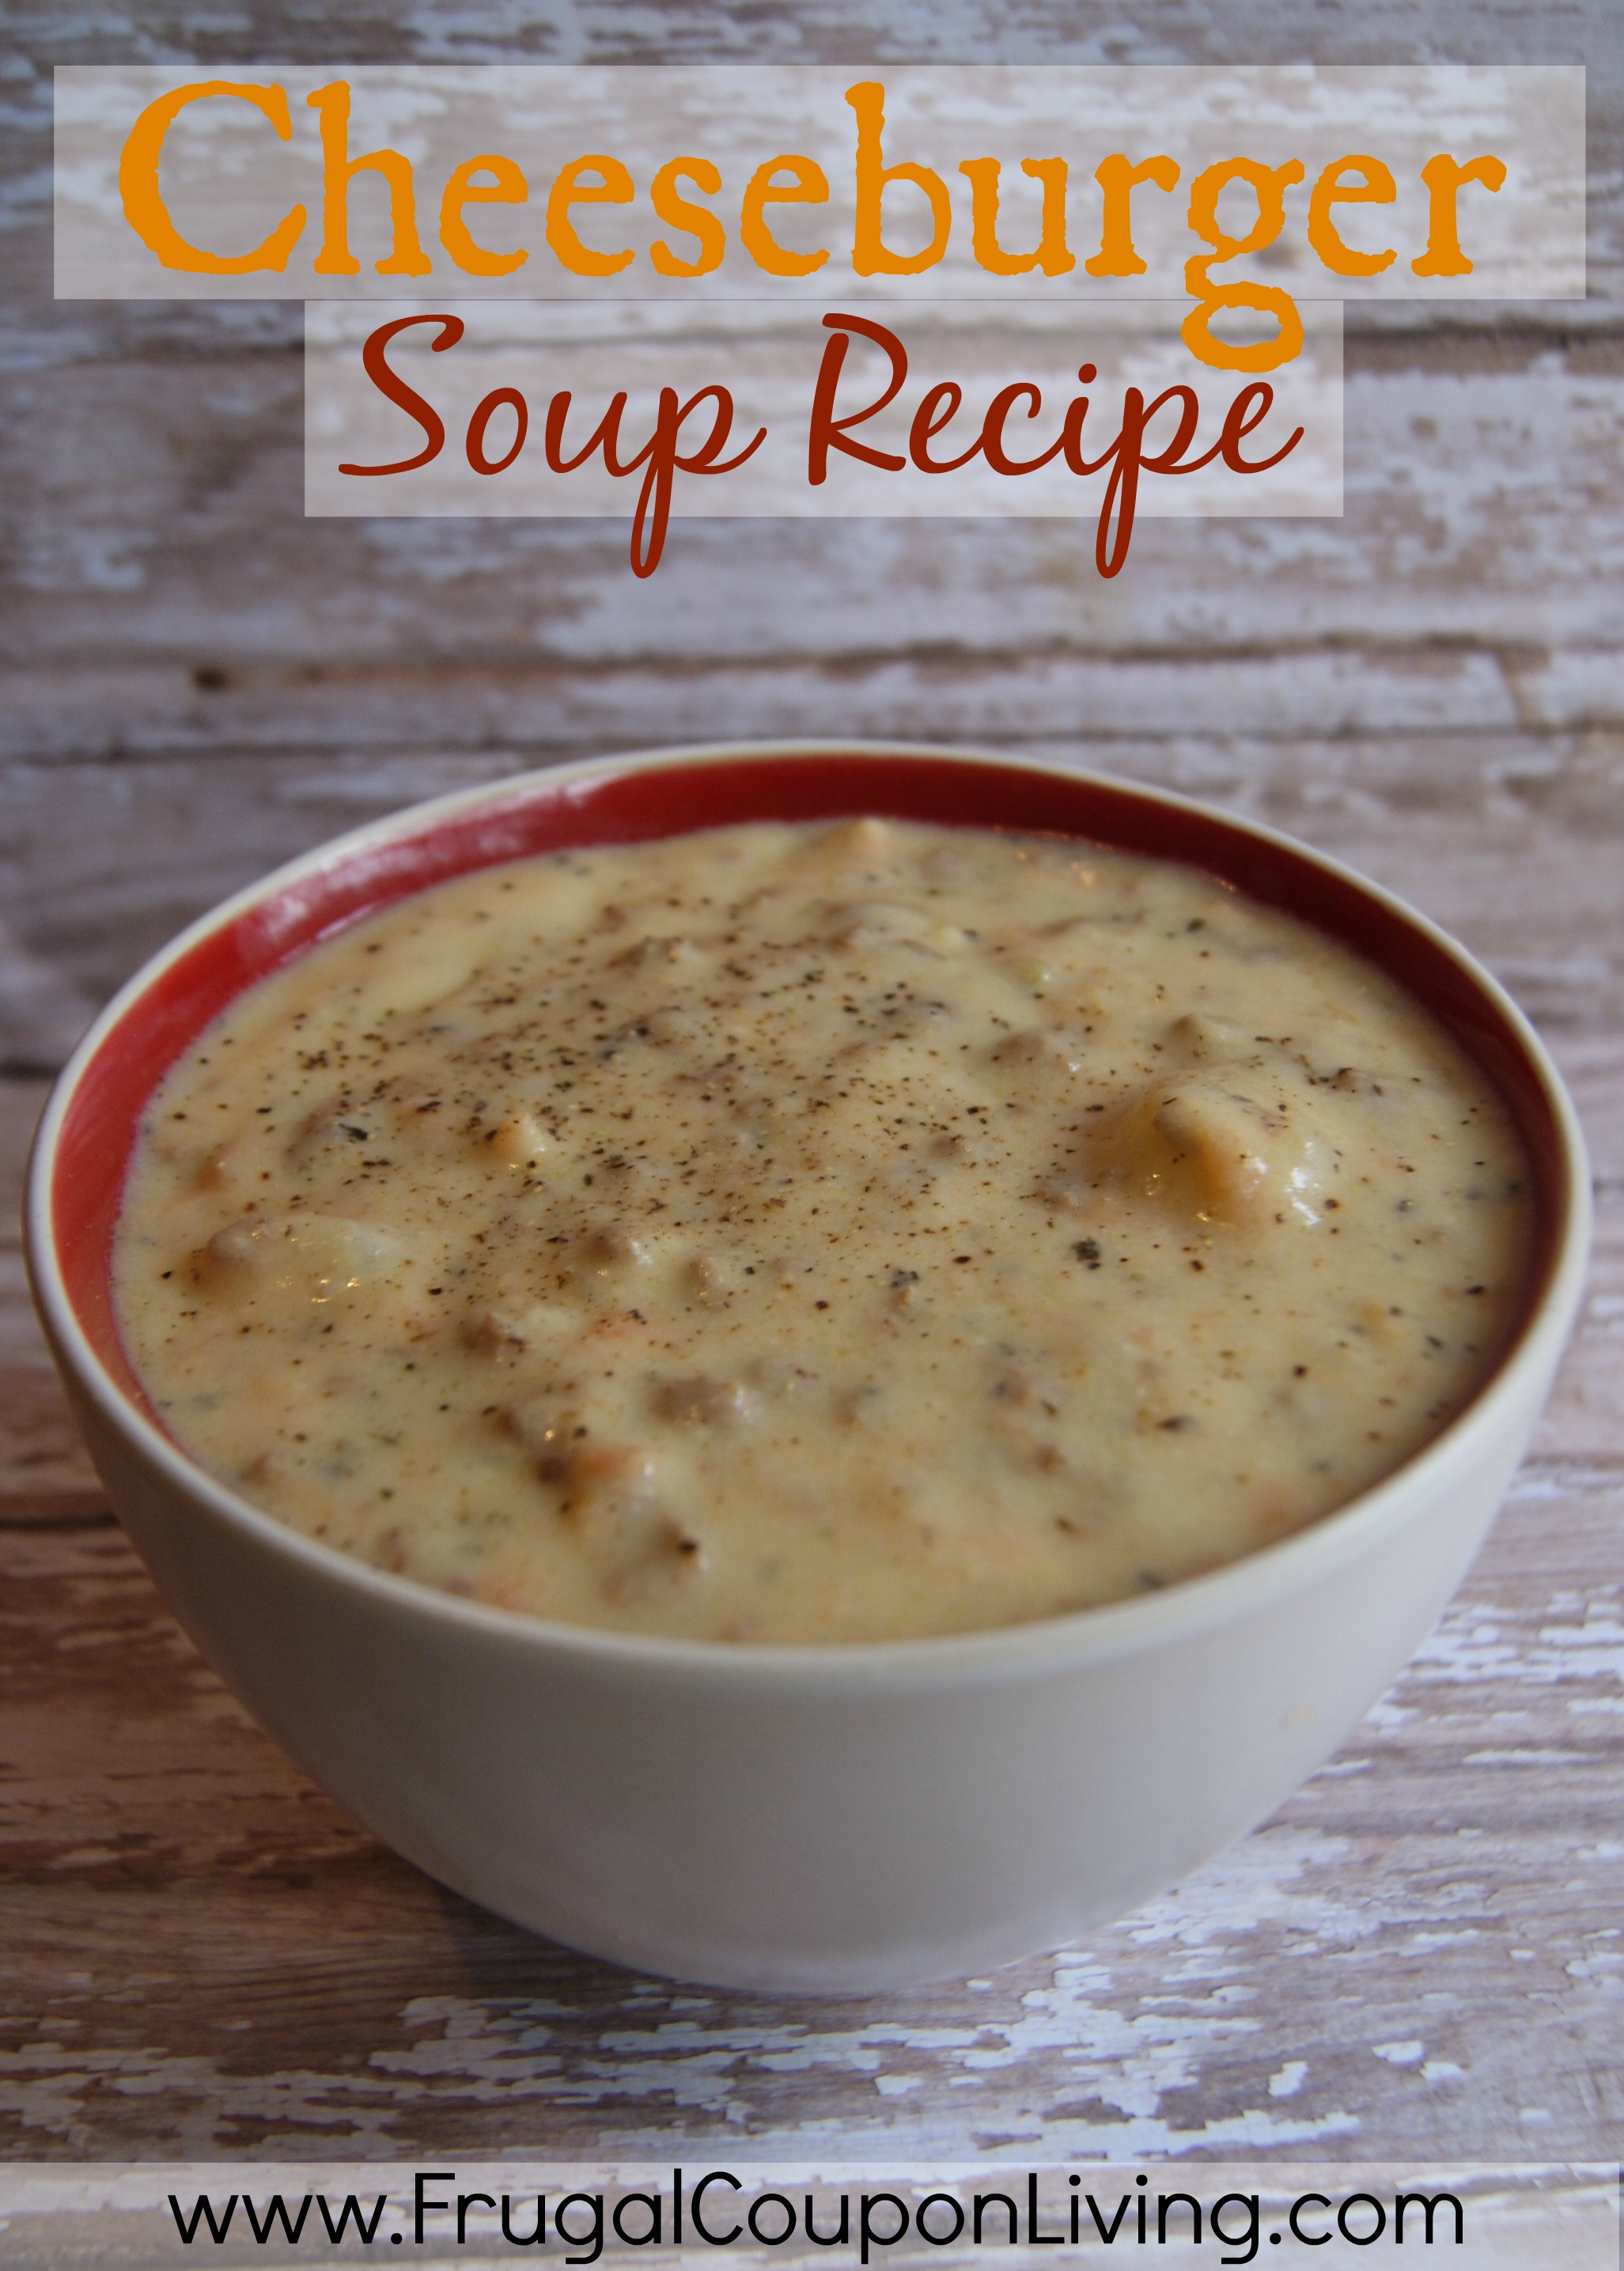 Cheeseburger Soup Recipe - Simple and Easy Dinner with a Twist